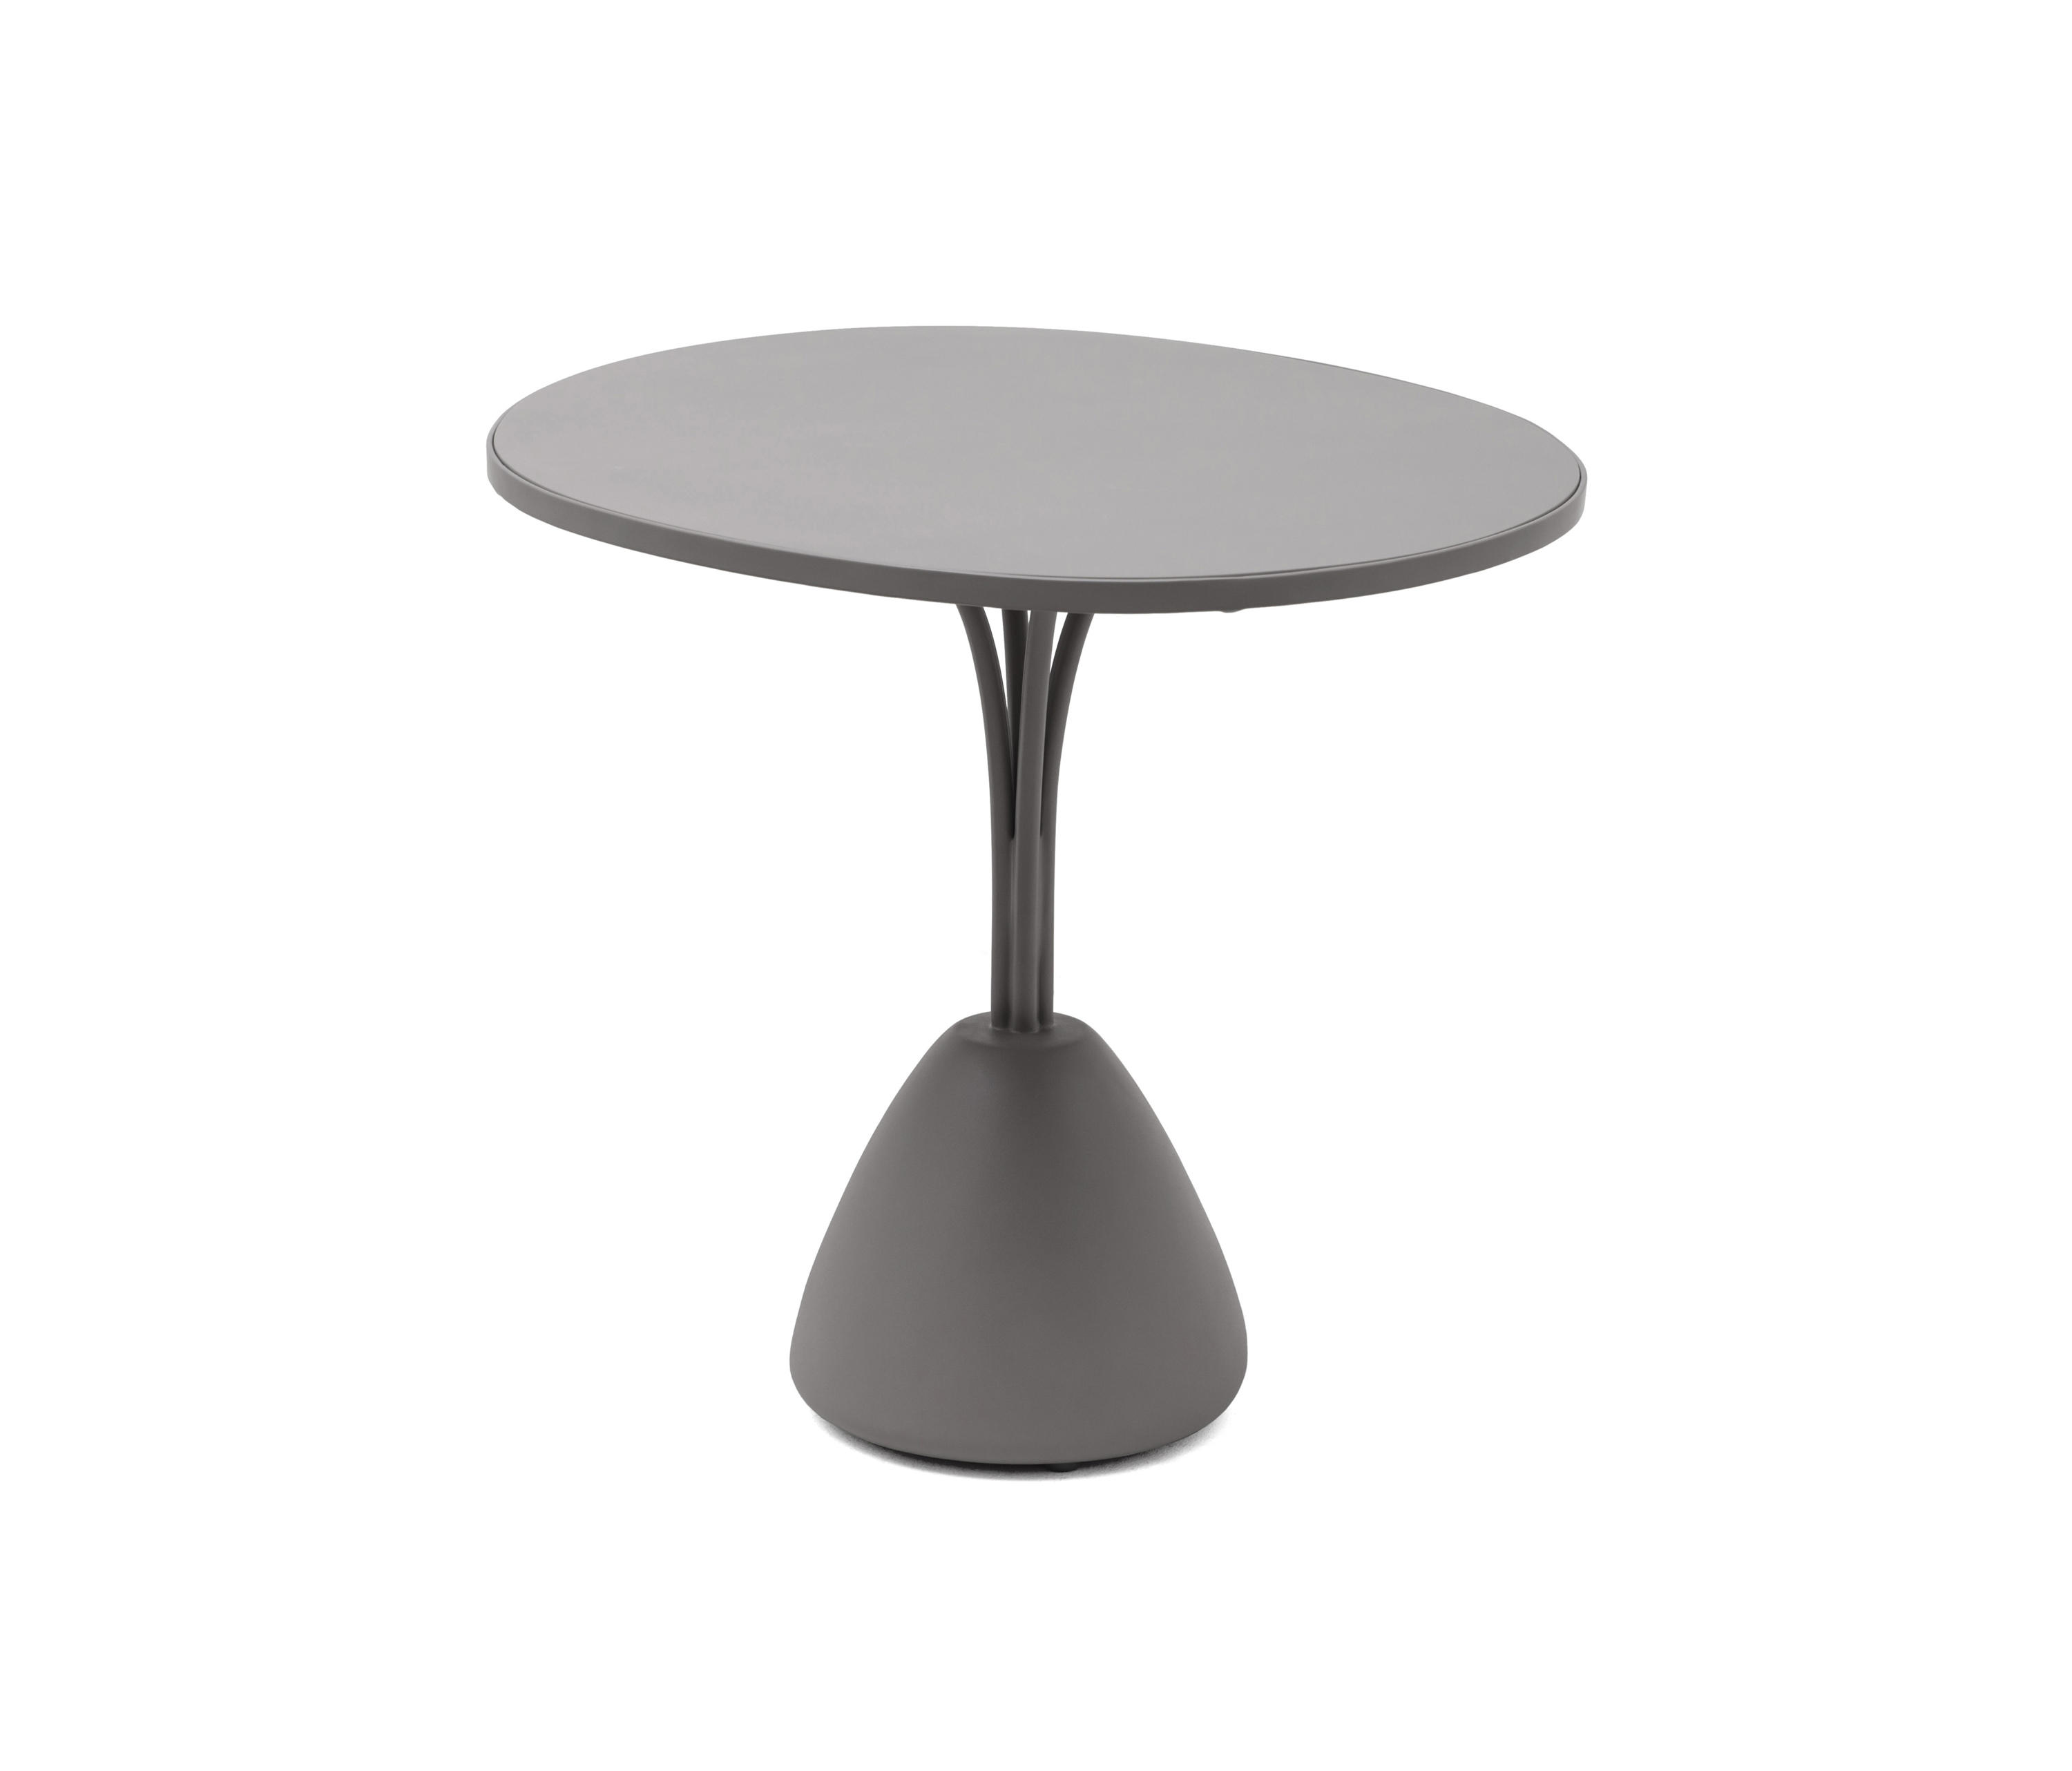 top edge bistro beveled metal tables shop brushed with base bevel classic office round square table